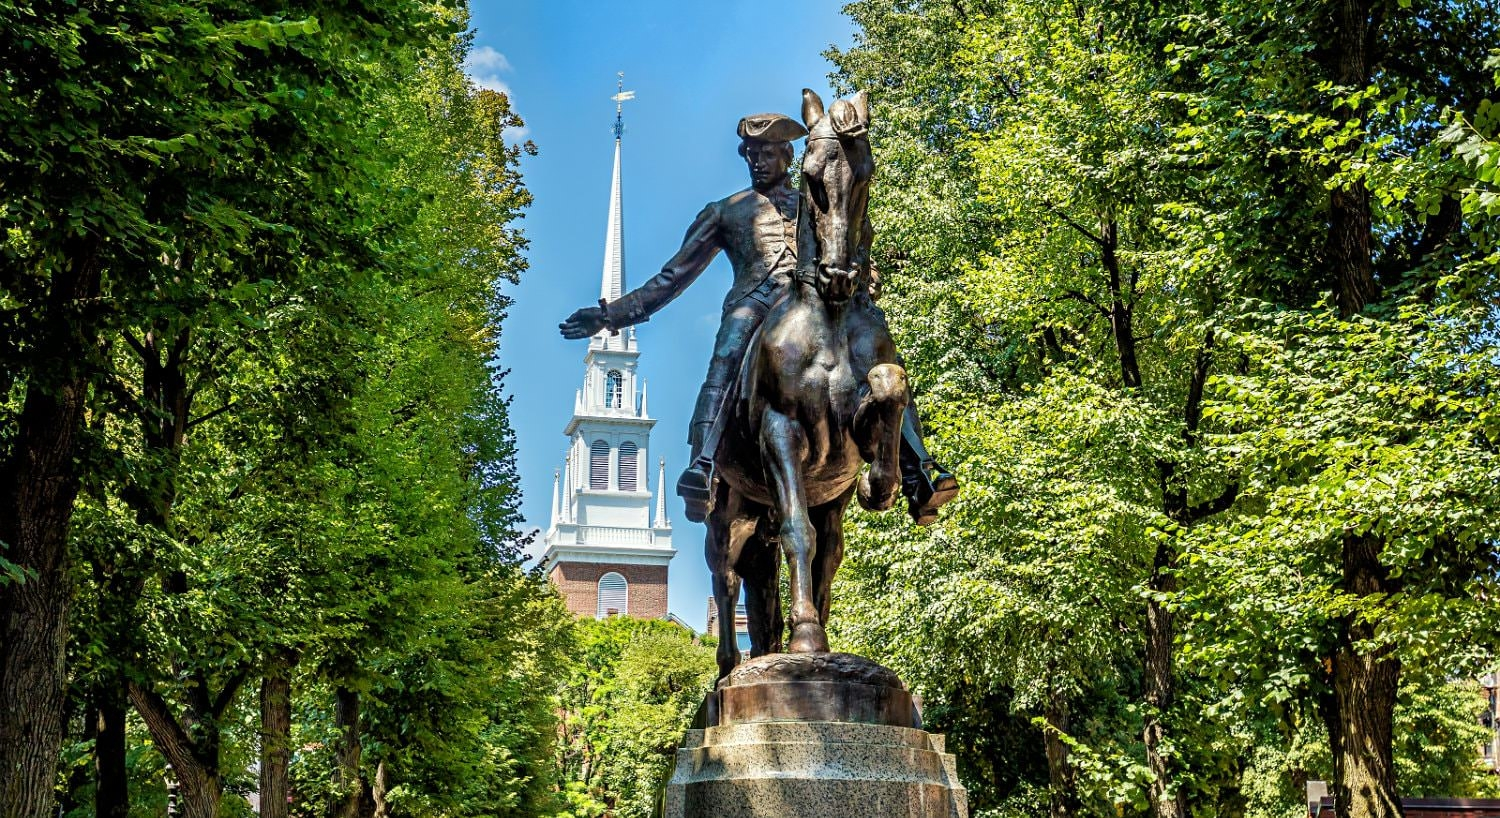 Bronze statue of Paul Revere amidst a backdrop of lush greenery, blue skies, and top of a white church steeple